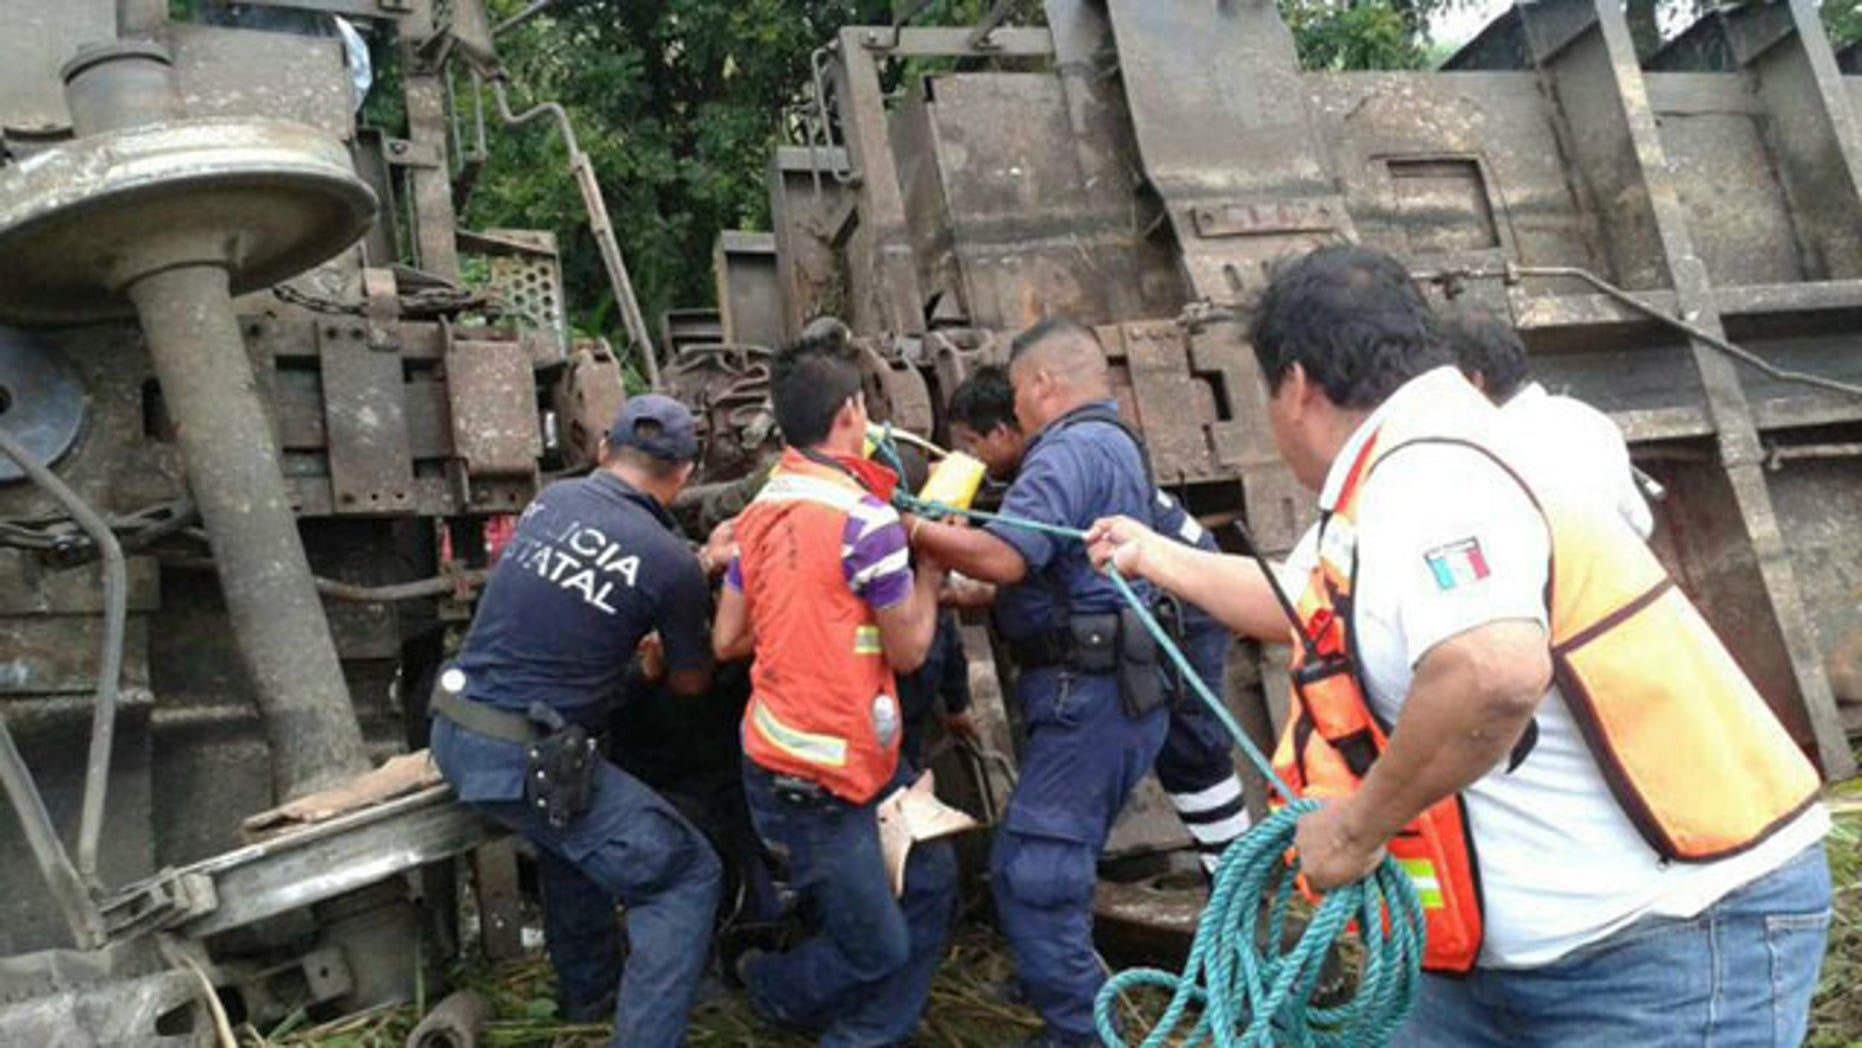 August 25, 2013: In this photo release by the Civil Protection of the State of Tabasco, police agents and rescue workers work at a site where a train derailed in Tabasco, Mexico. (AP Photo)